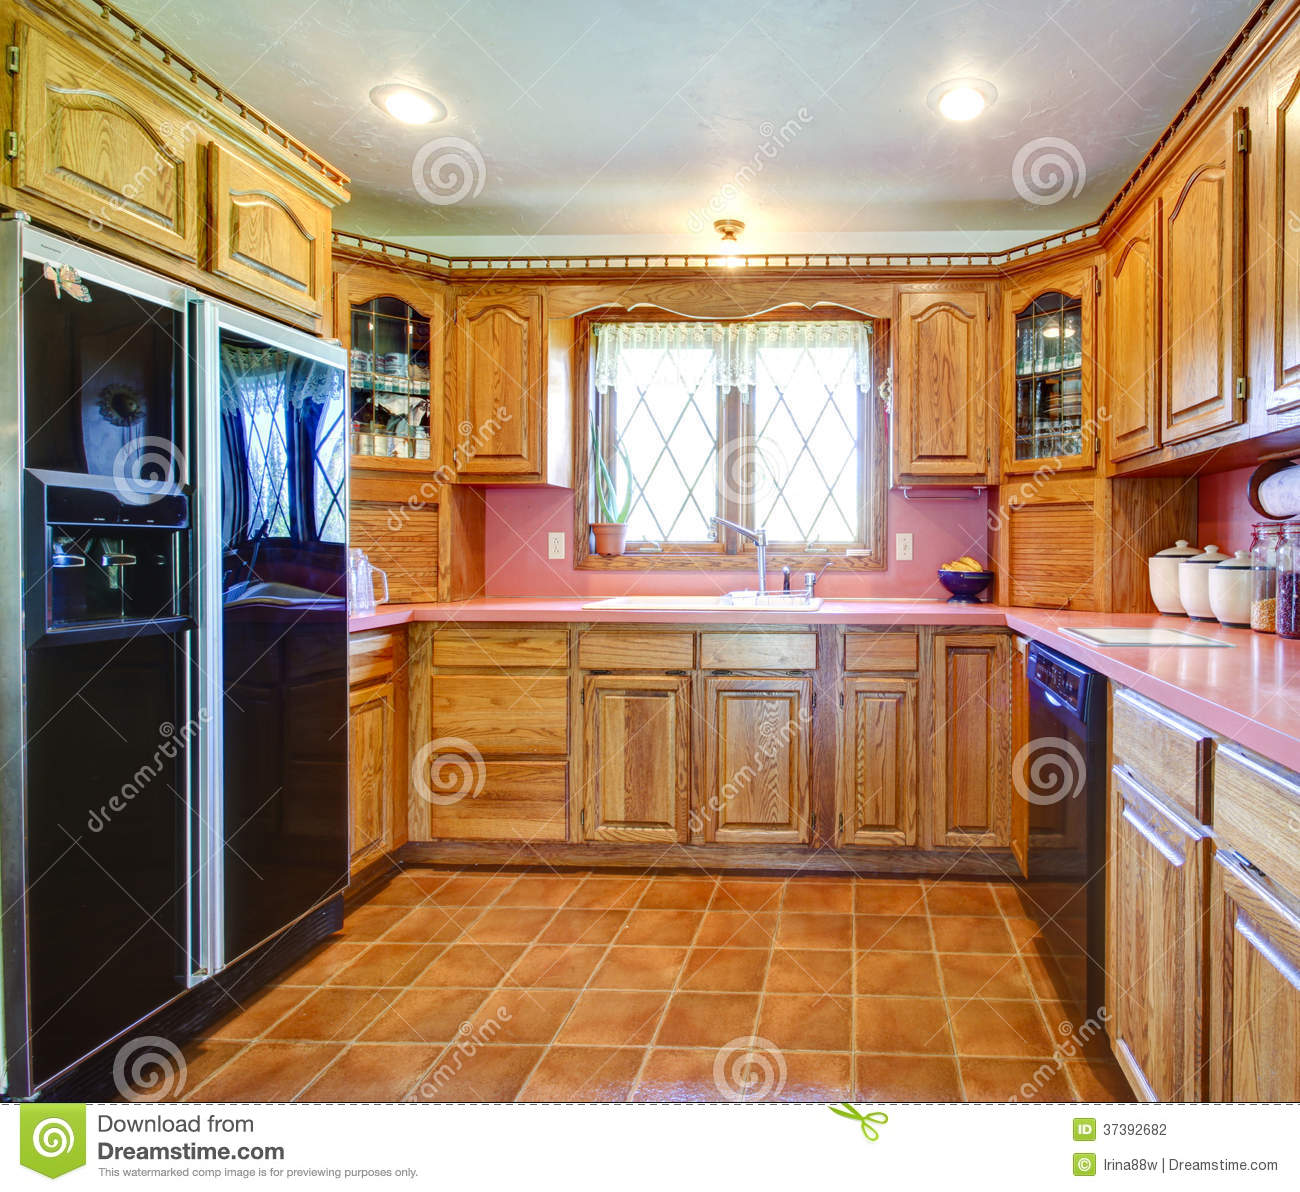 Luxury Kitchen Room Interior Bright Wooden Stock Vector: Farmhouse Kitchen Room With Wood Cabinets And Pink